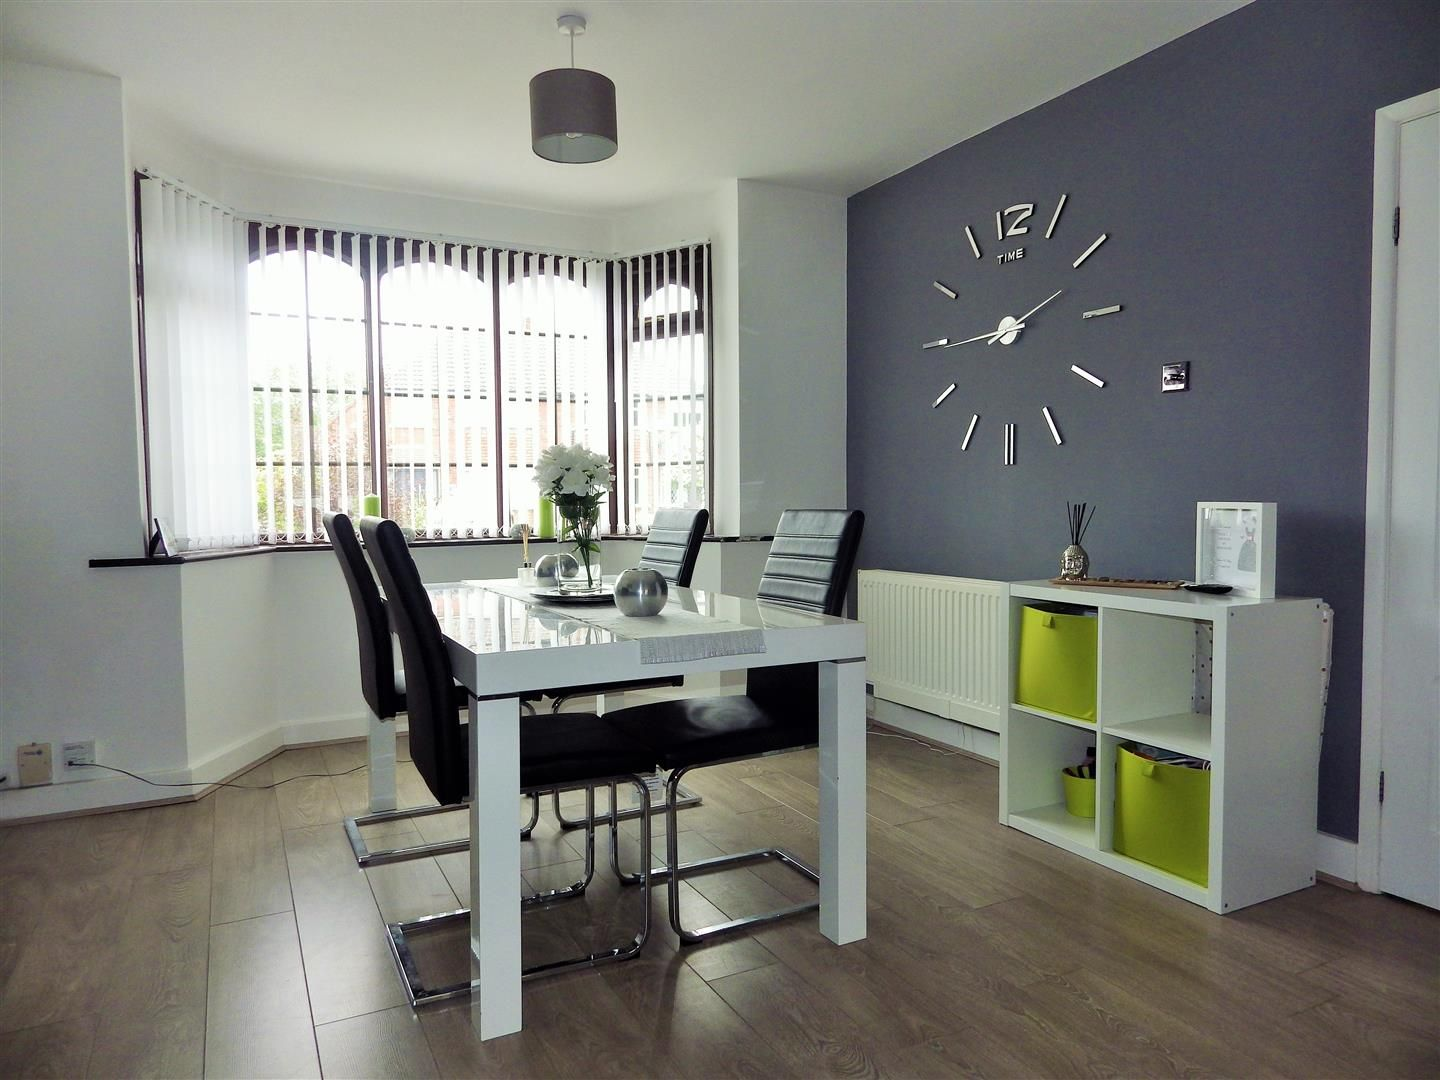 3 bed semi-detached for sale in Hasbury  - Property Image 5